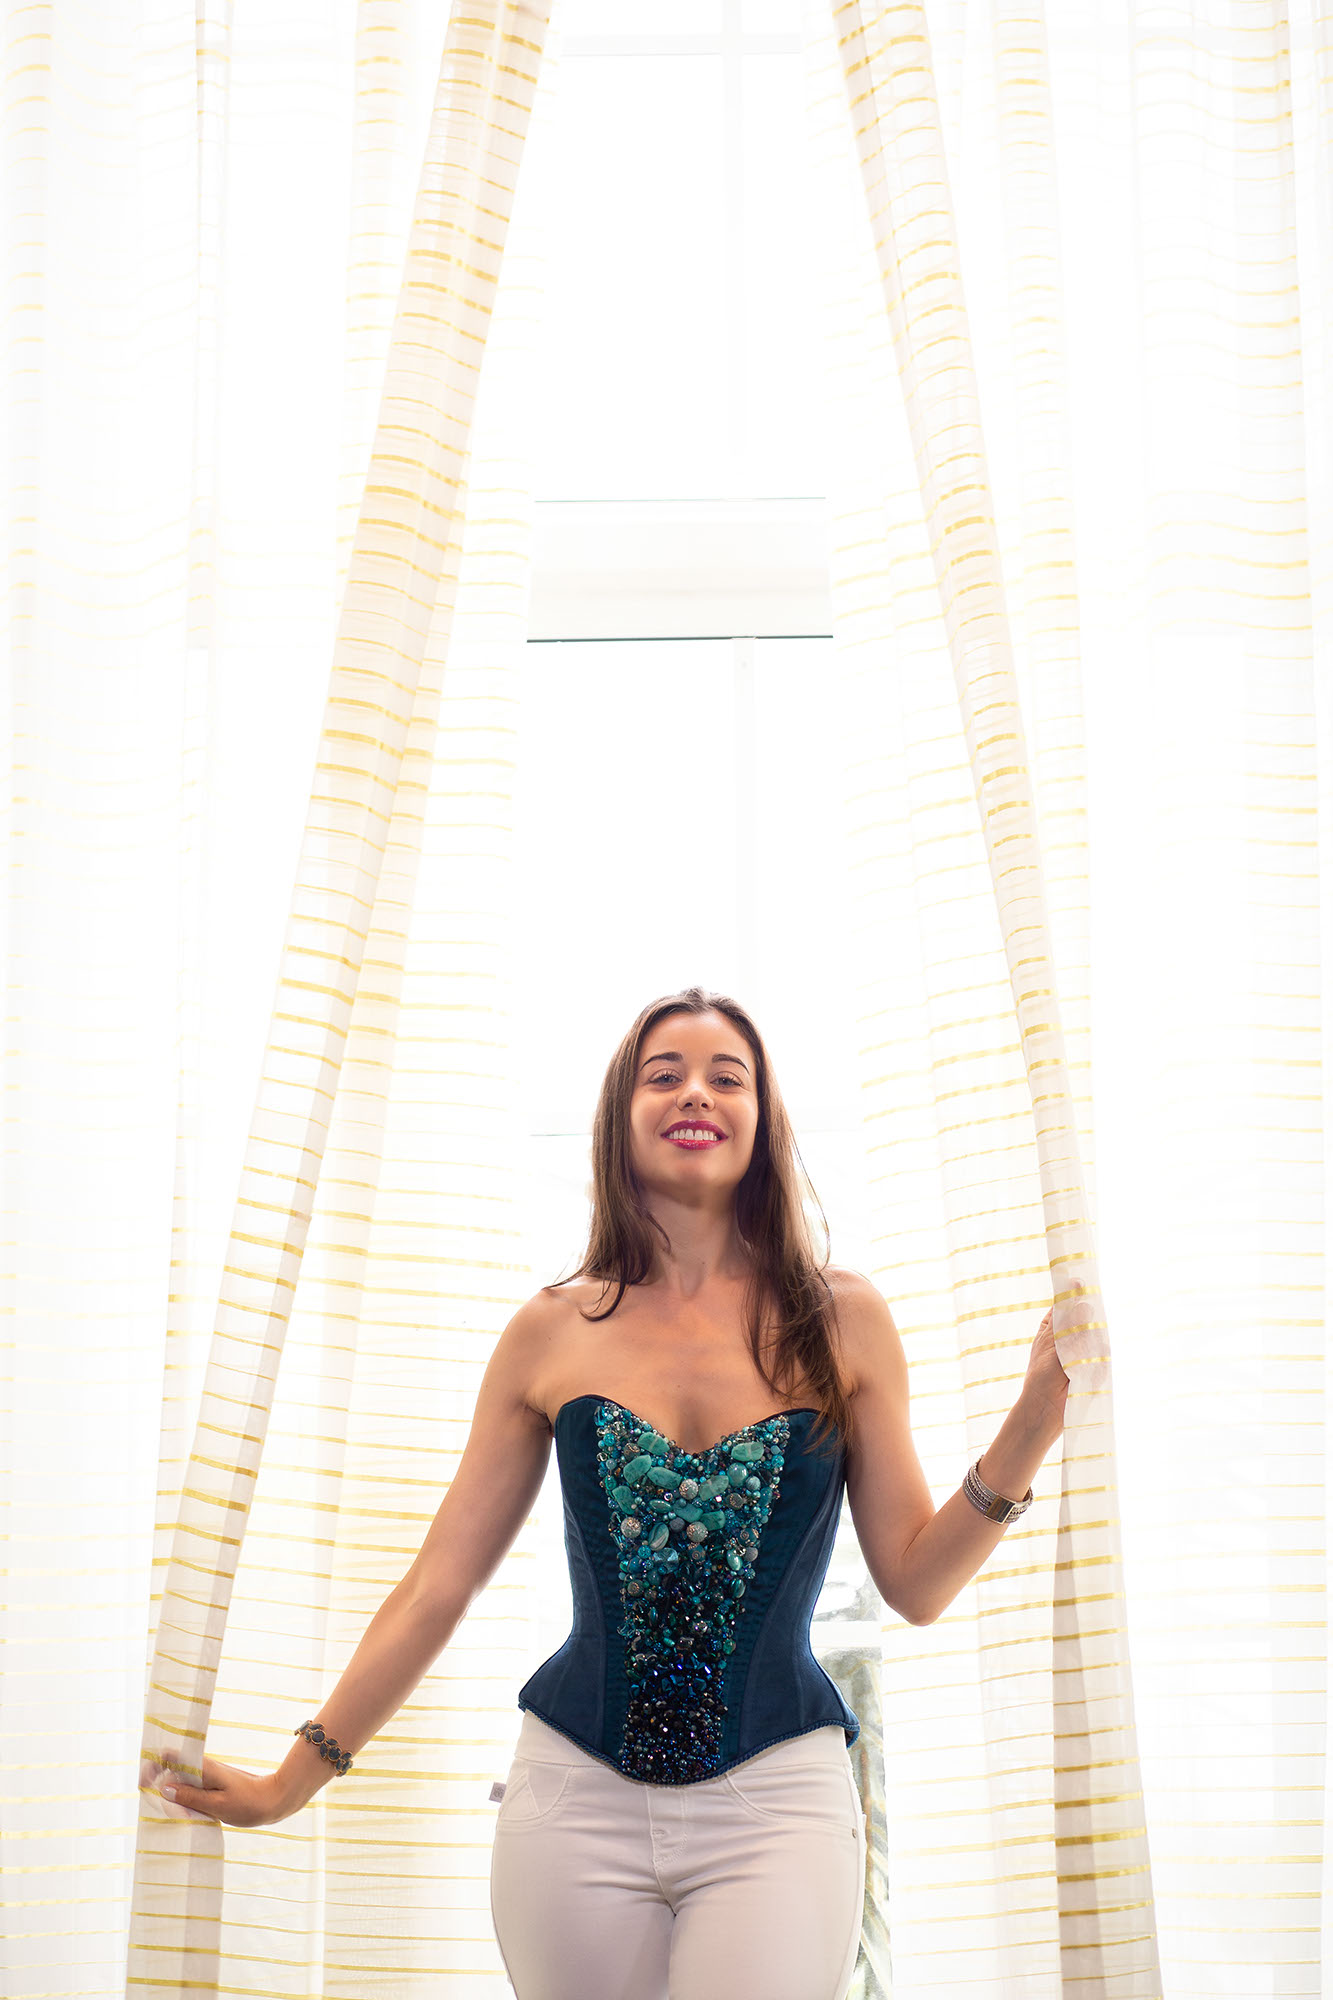 Stella in blue corset in front of window with white curtains